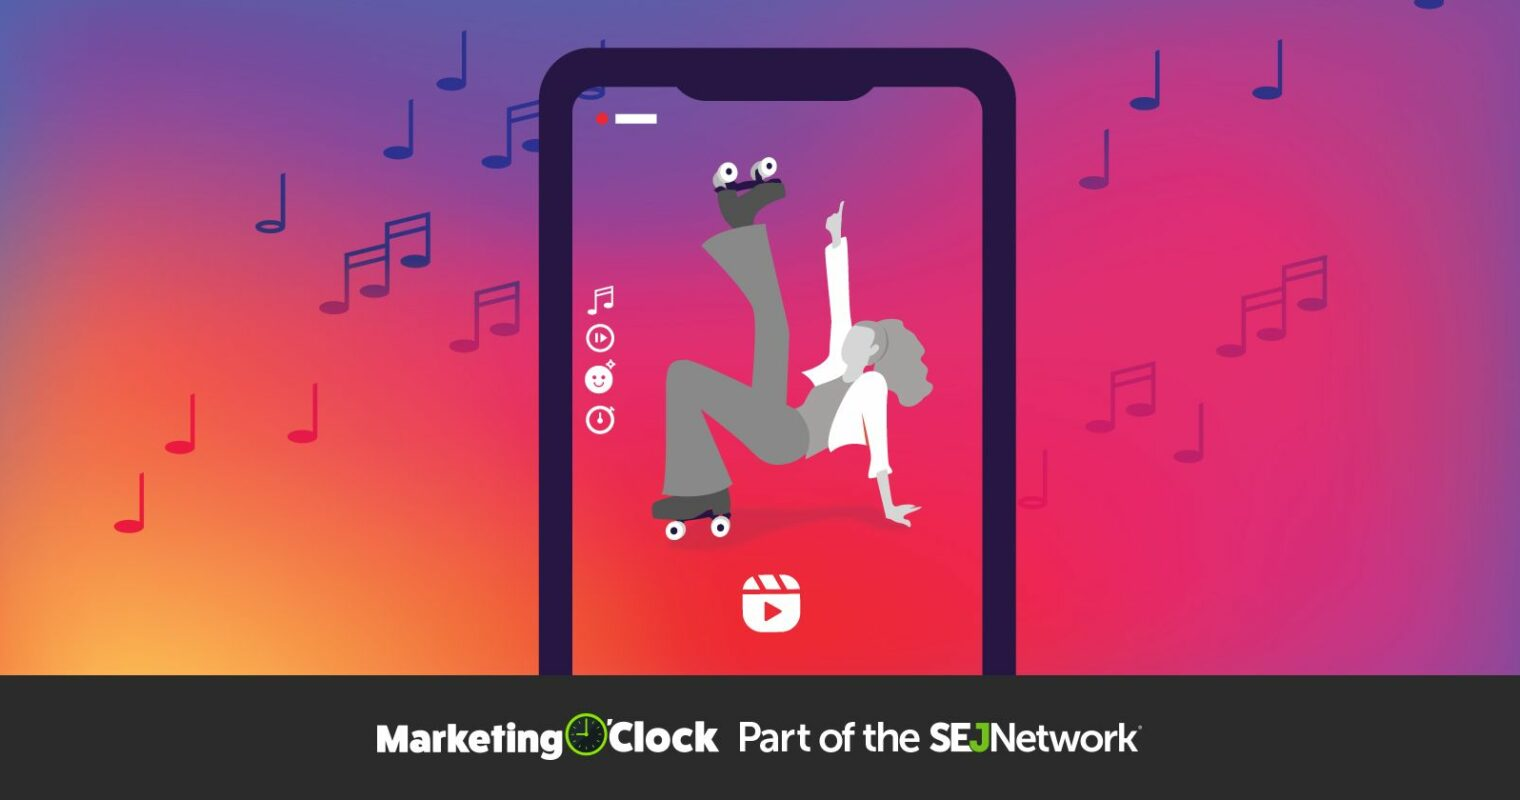 Instagram Introduces TikTok Rival 'Reels' & This Week's Digital Marketing News [PODCAST]